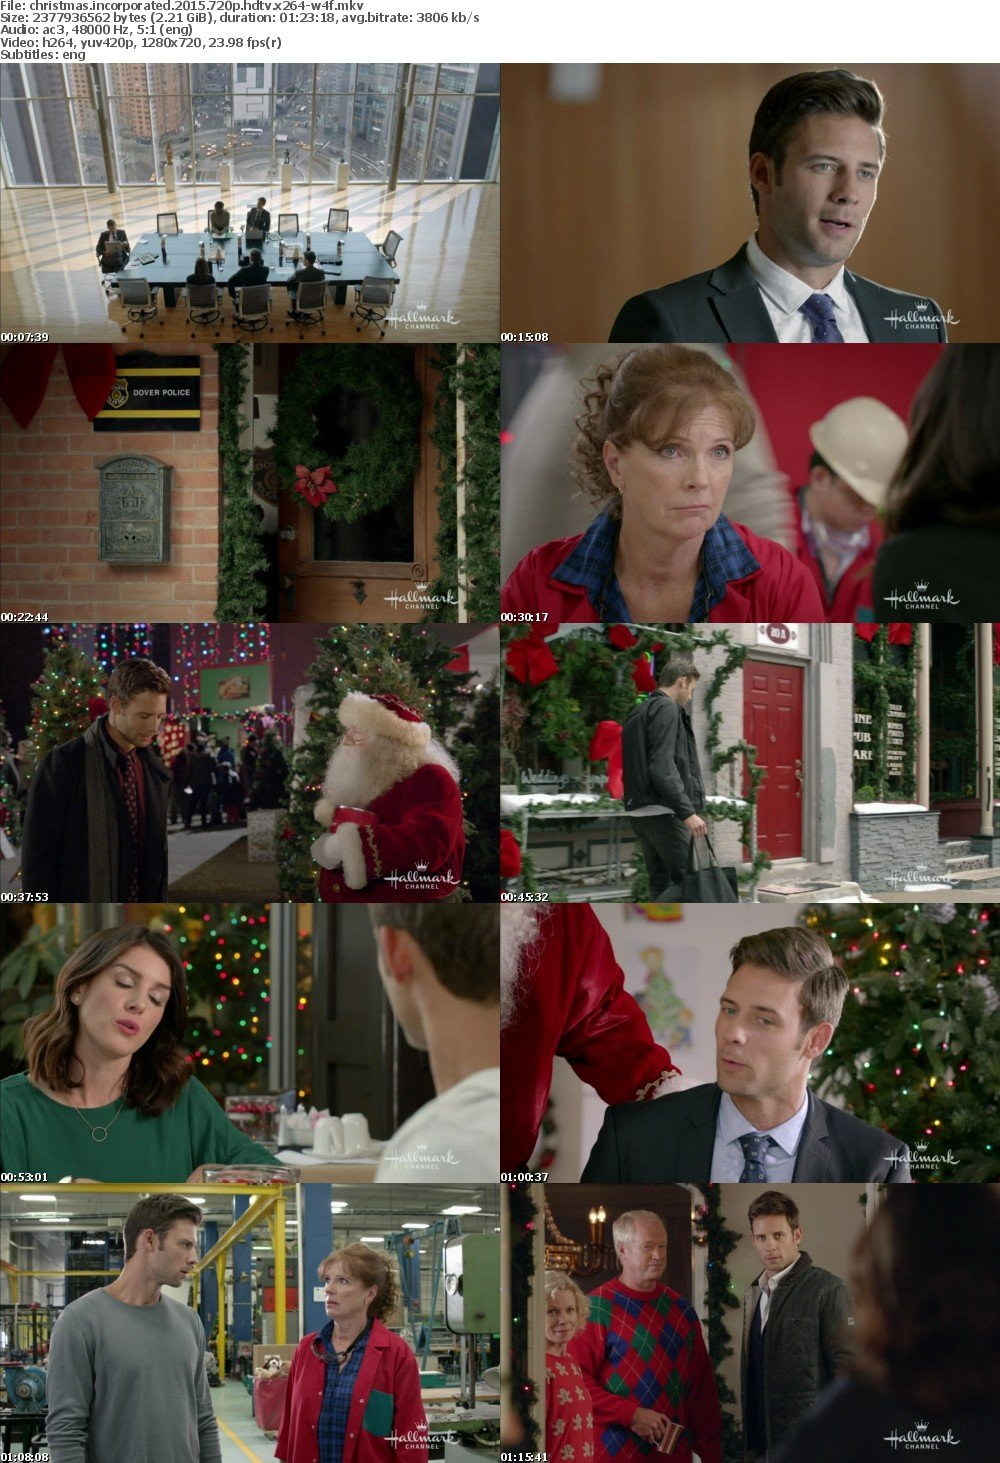 Christmas Incorporated.Download Christmas Incorporated 2015 720p Hdtv X264 W4f